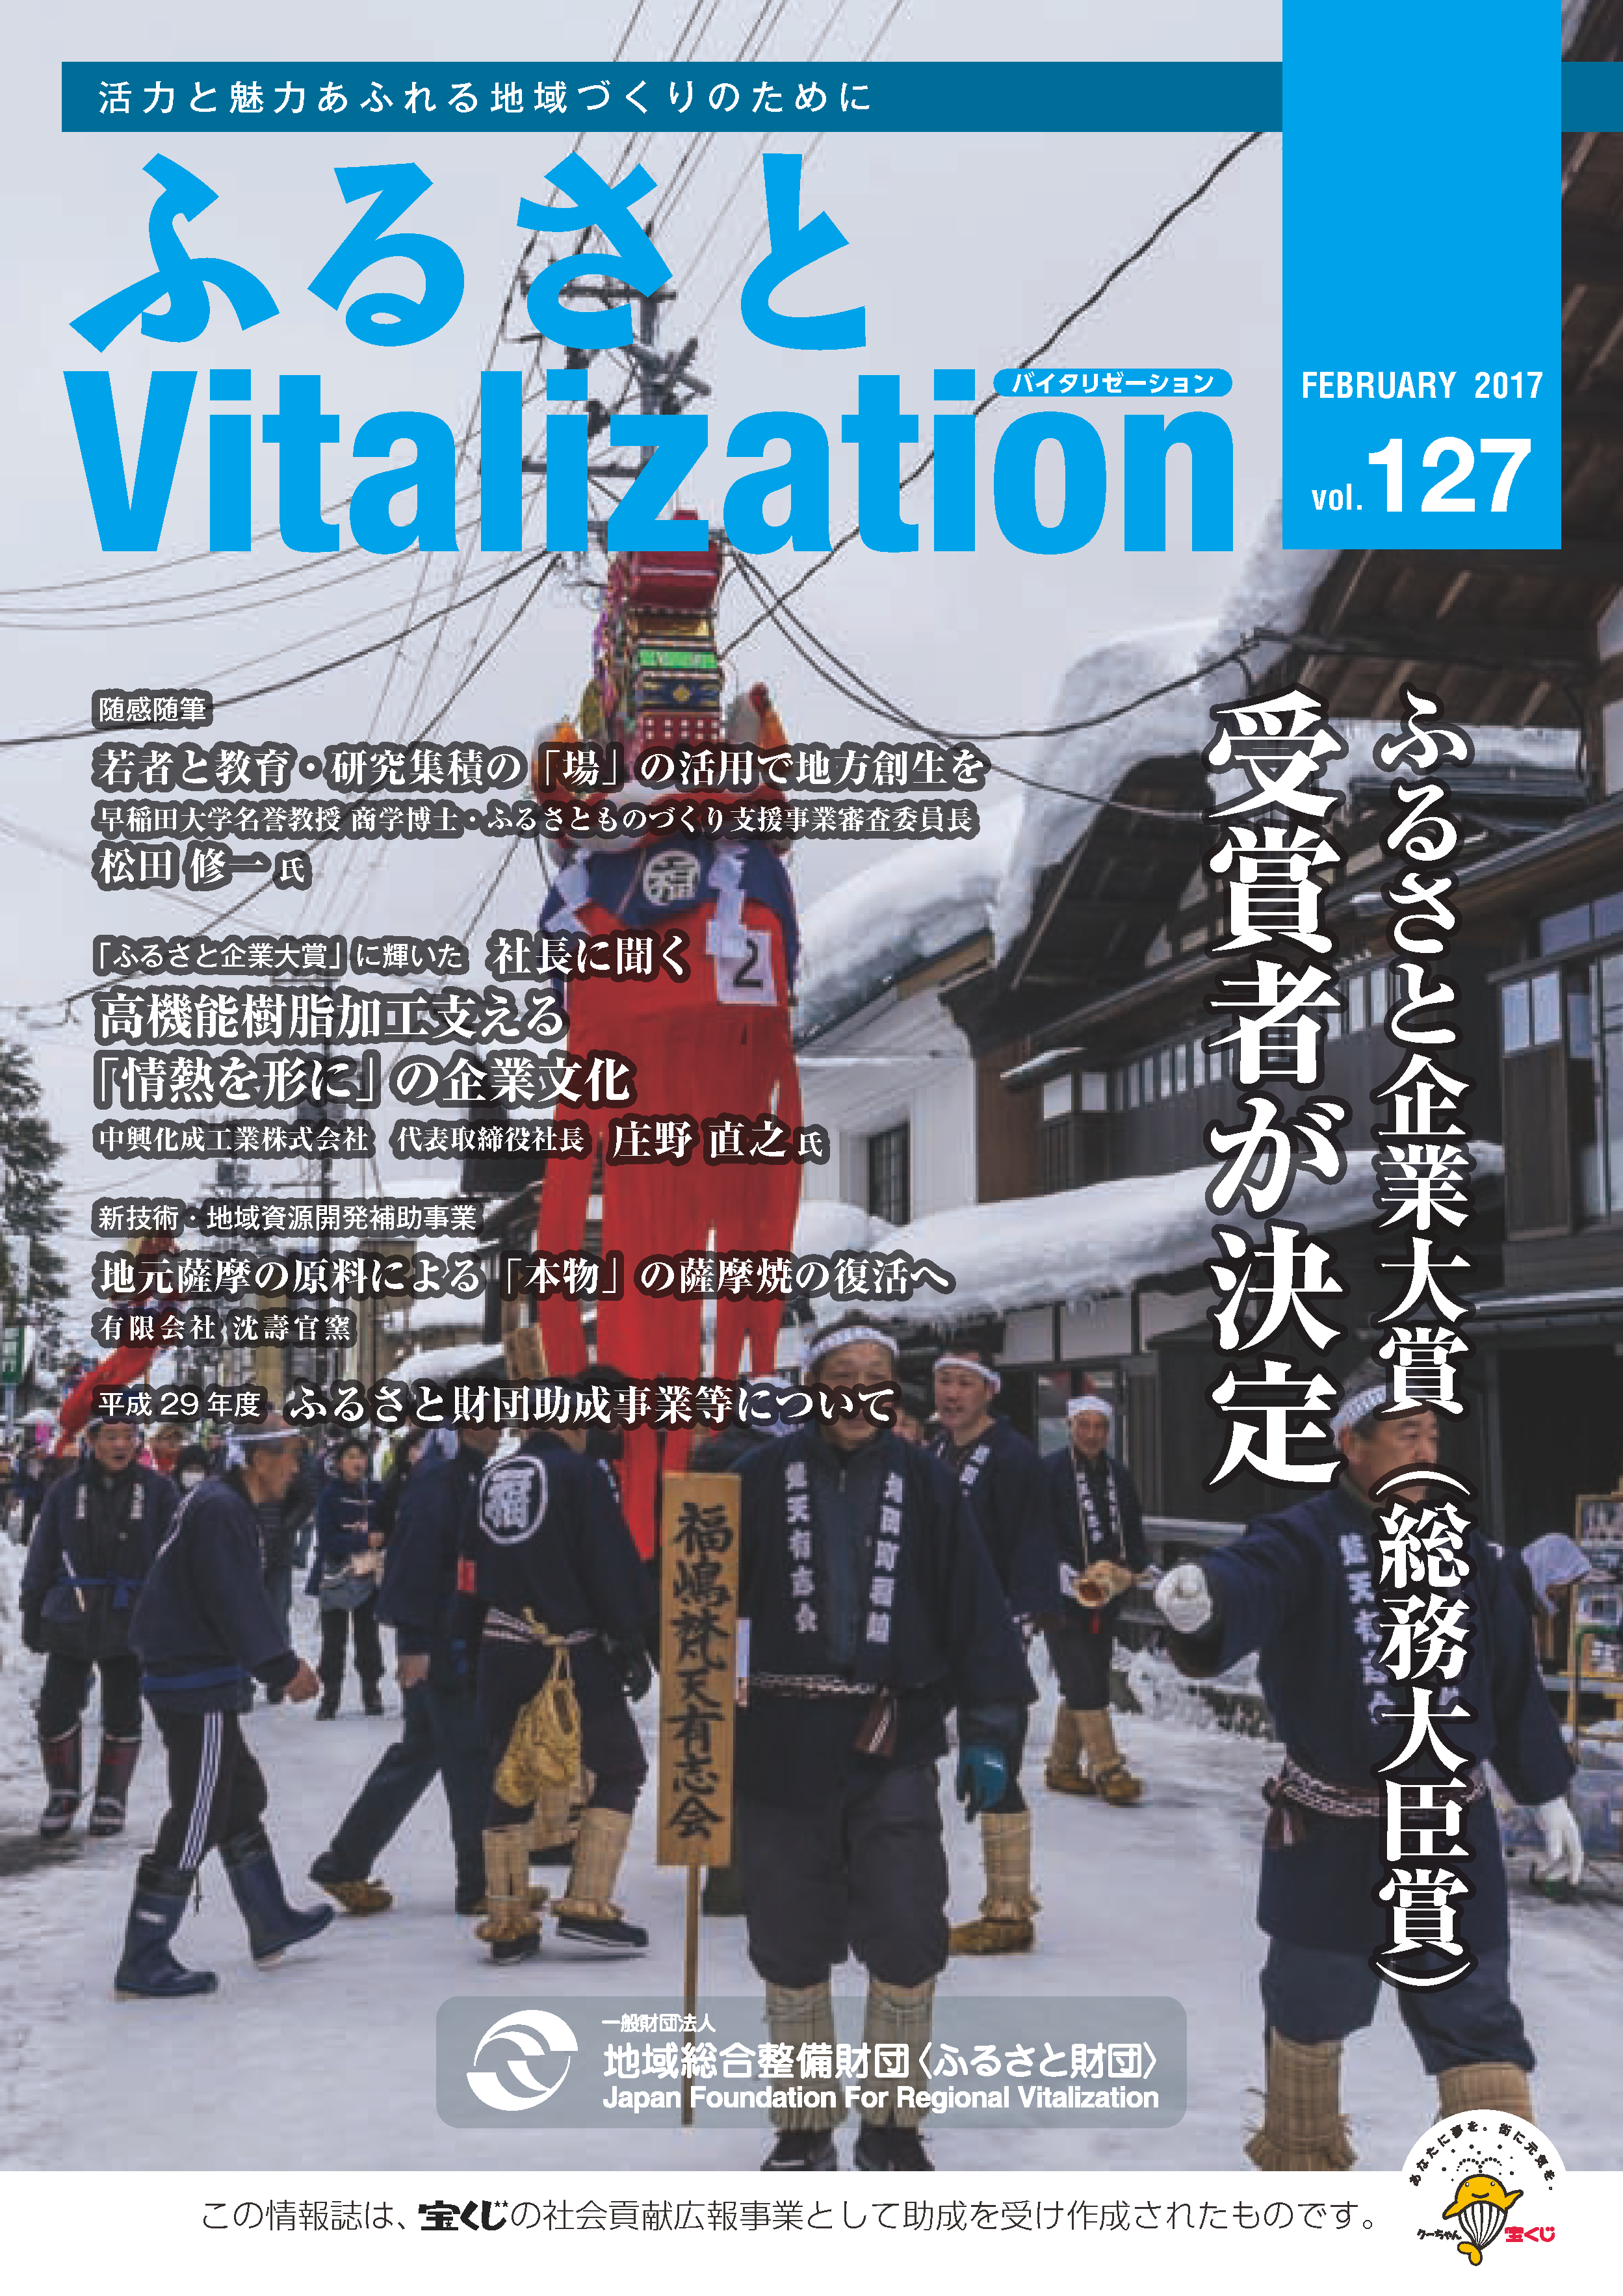 Furusato+Vitalization+vol.127_ページ_01.png